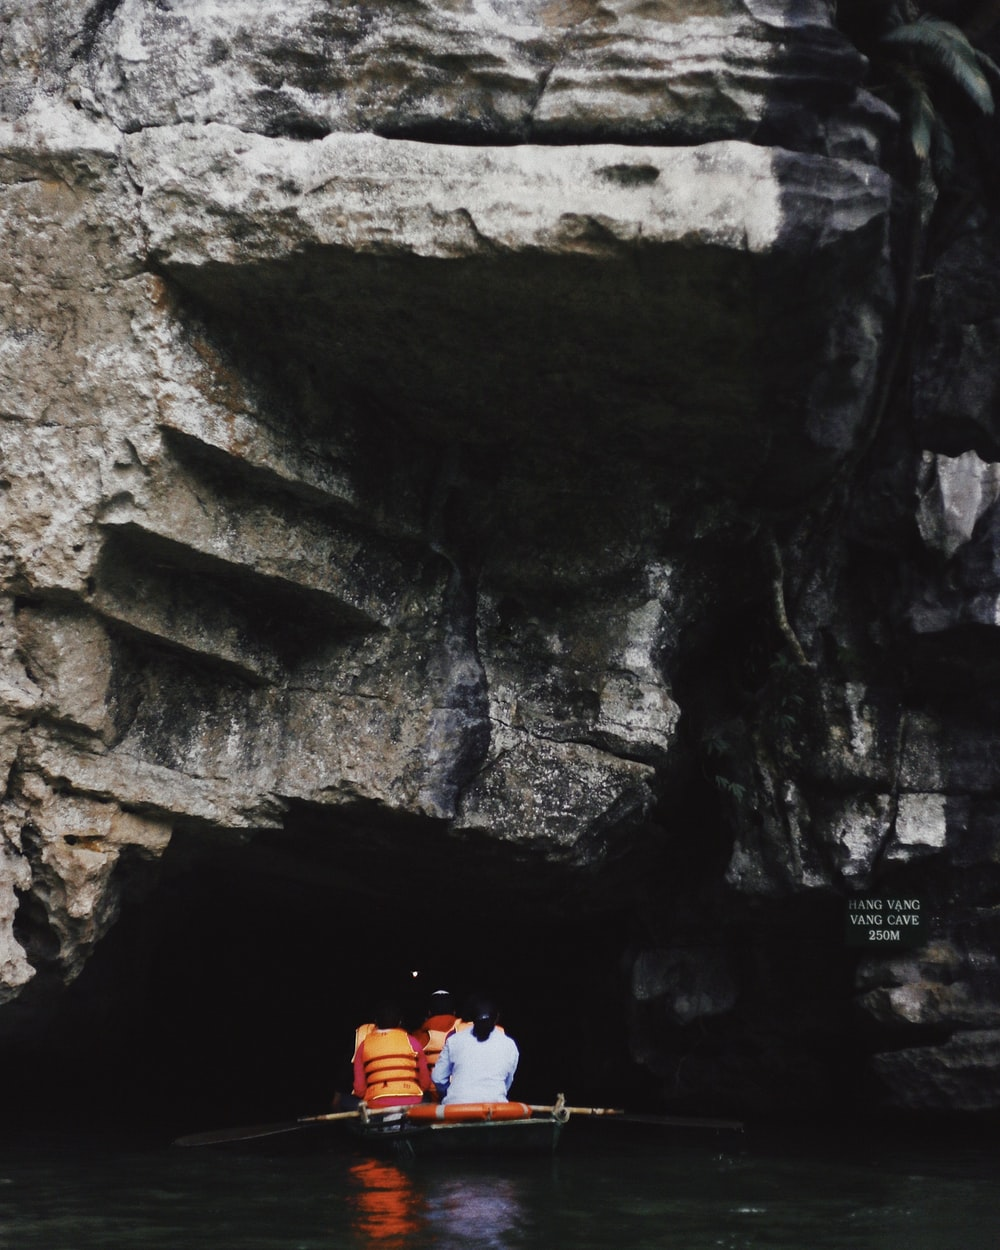 group of people on a boat going in a cave